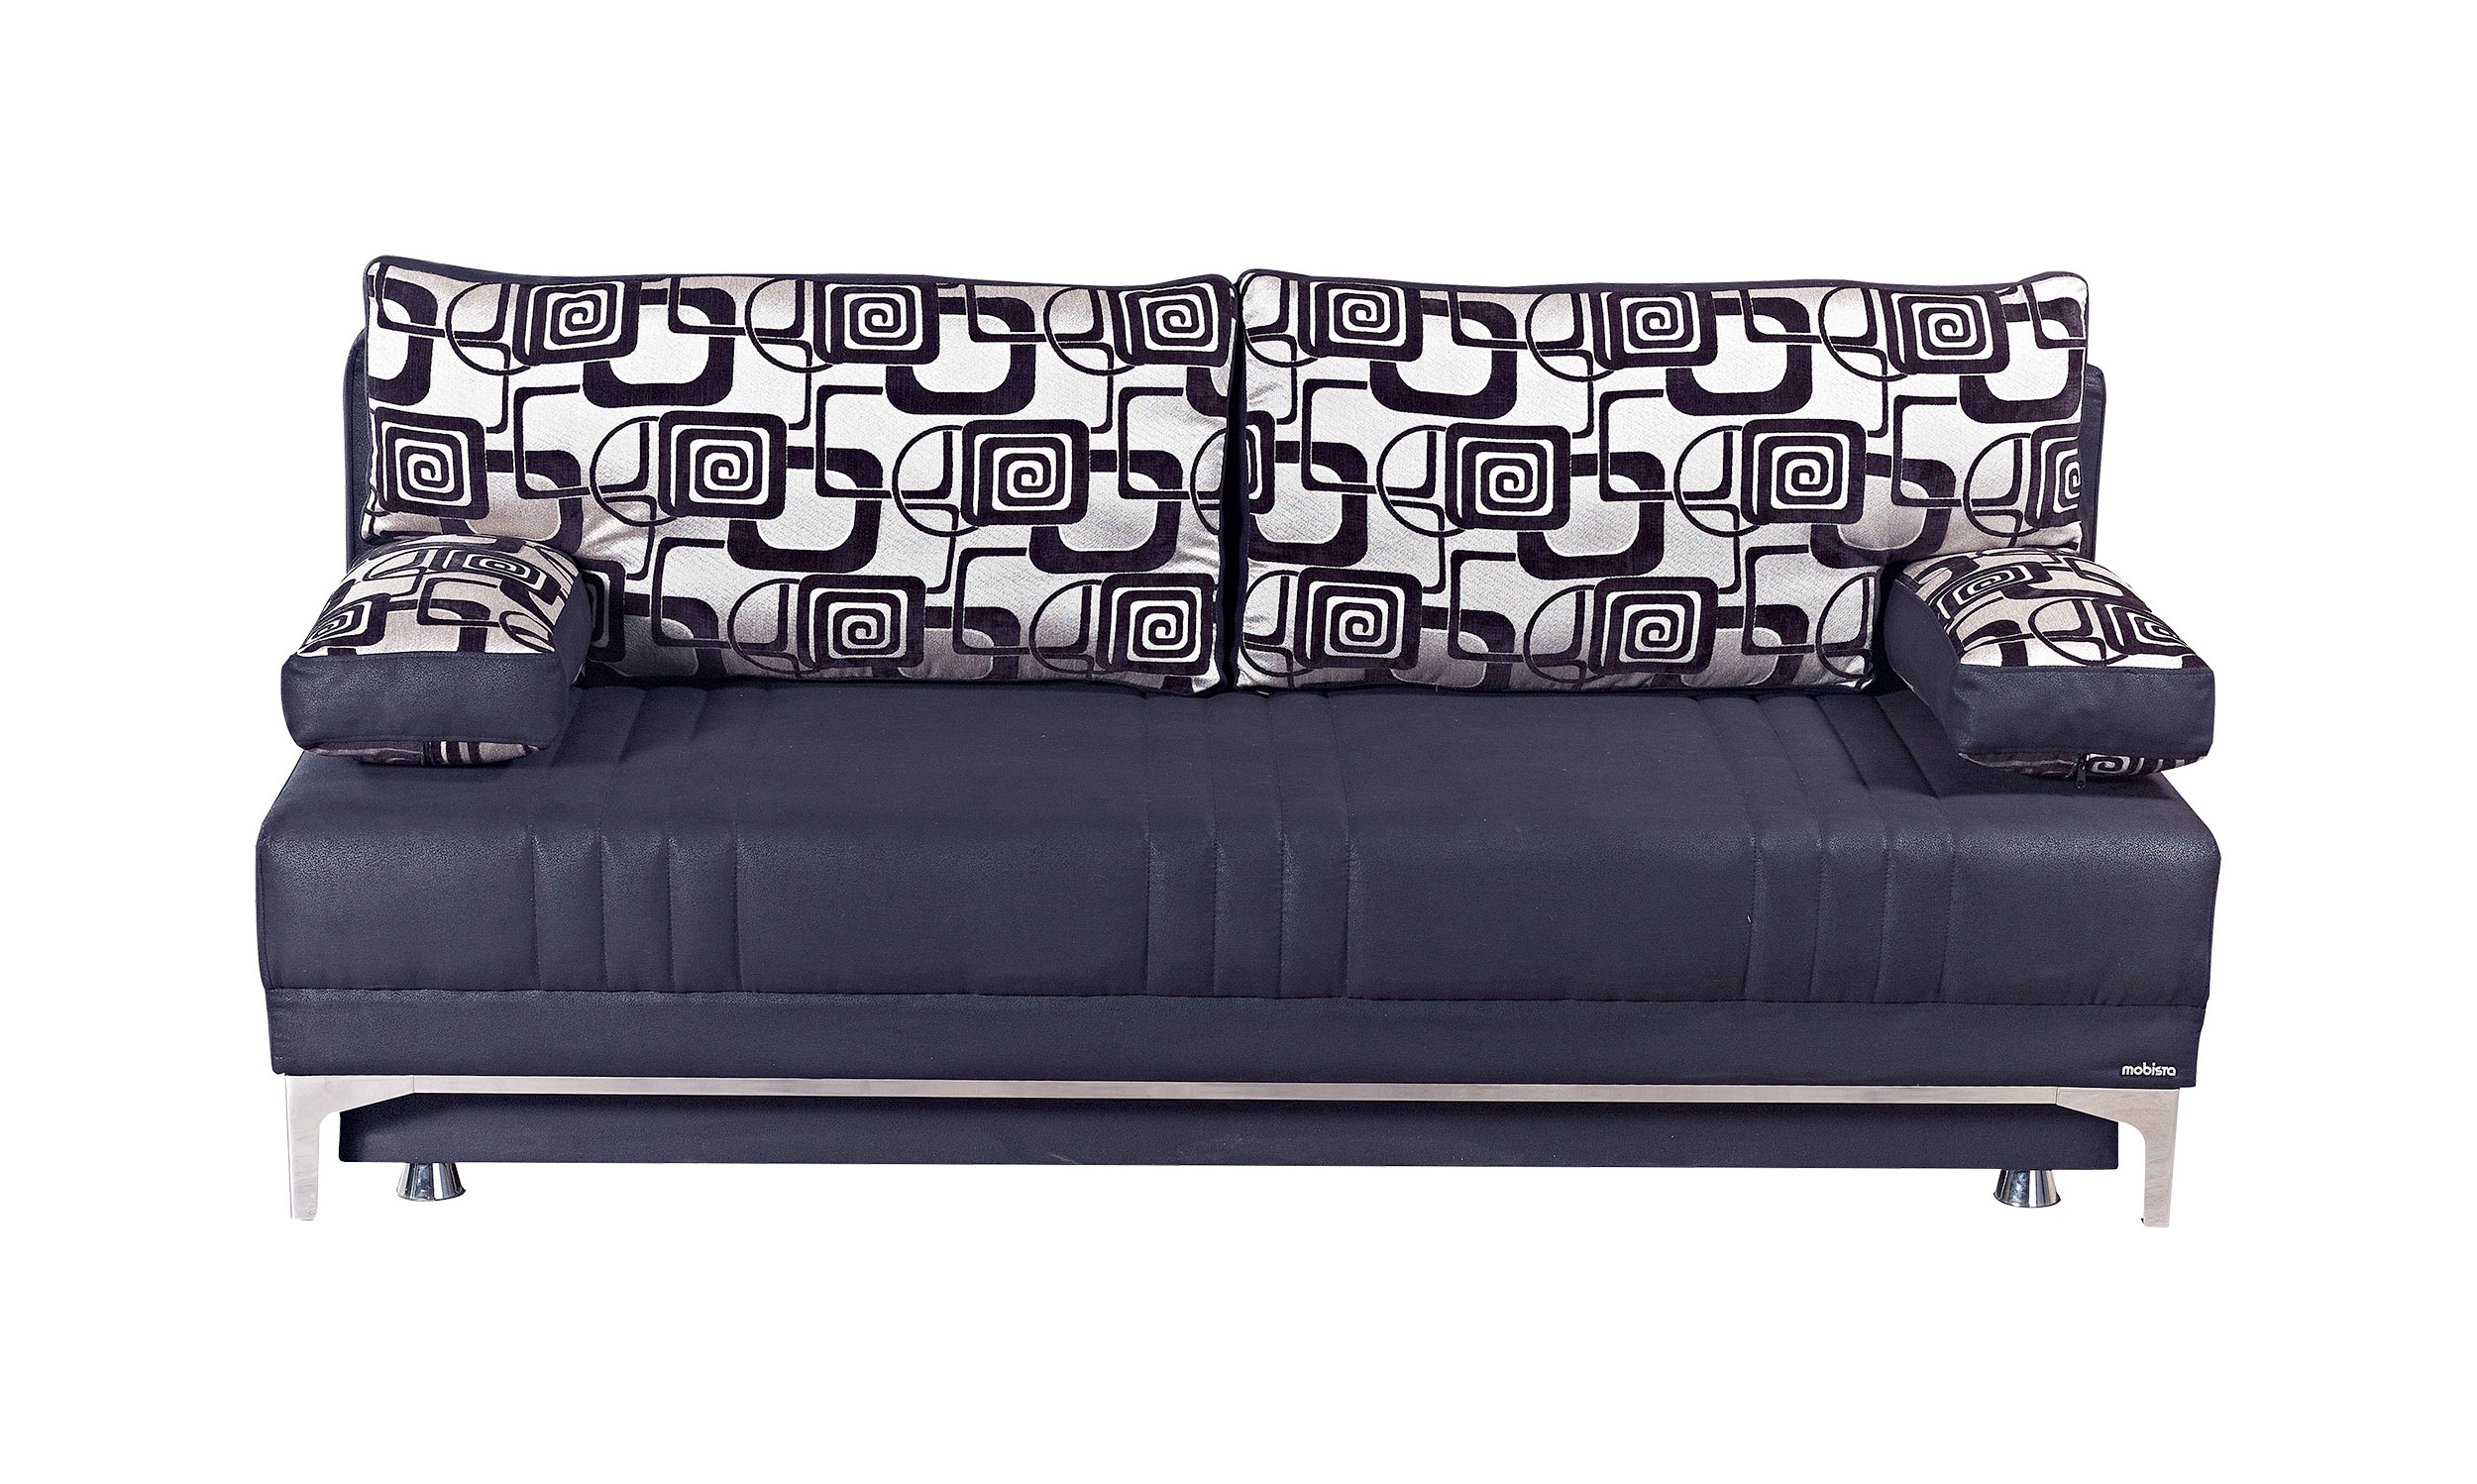 Europa Vintage Black Queen Size Sofa Bed By Mobista